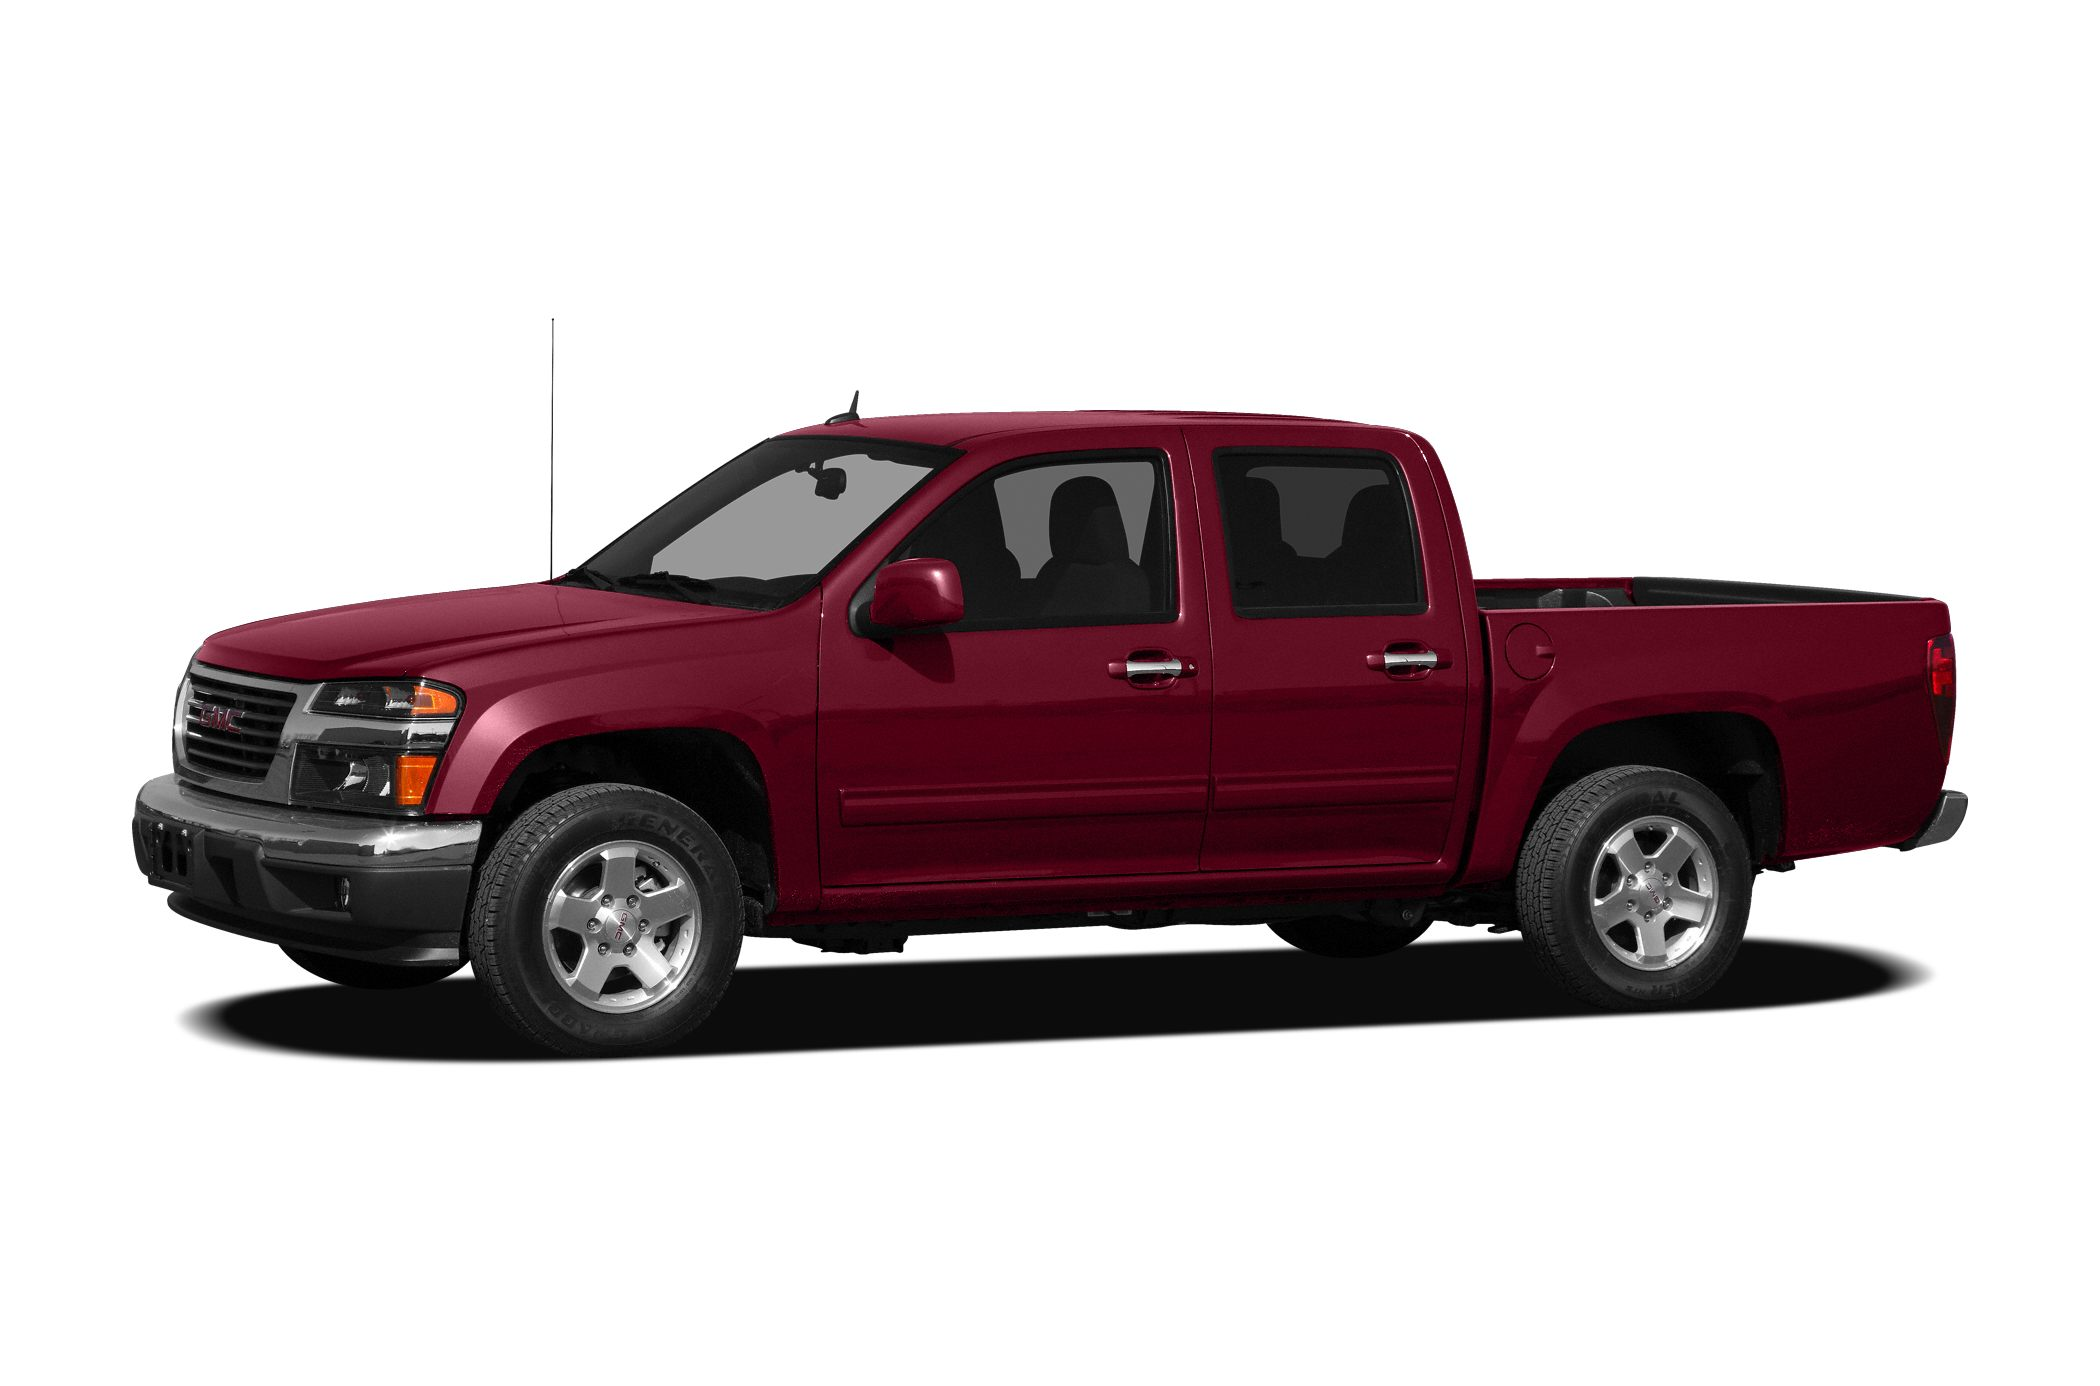 2010 GMC Canyon SLE At Advantage Chrysler you know you are getting a safe and dependable vehicle